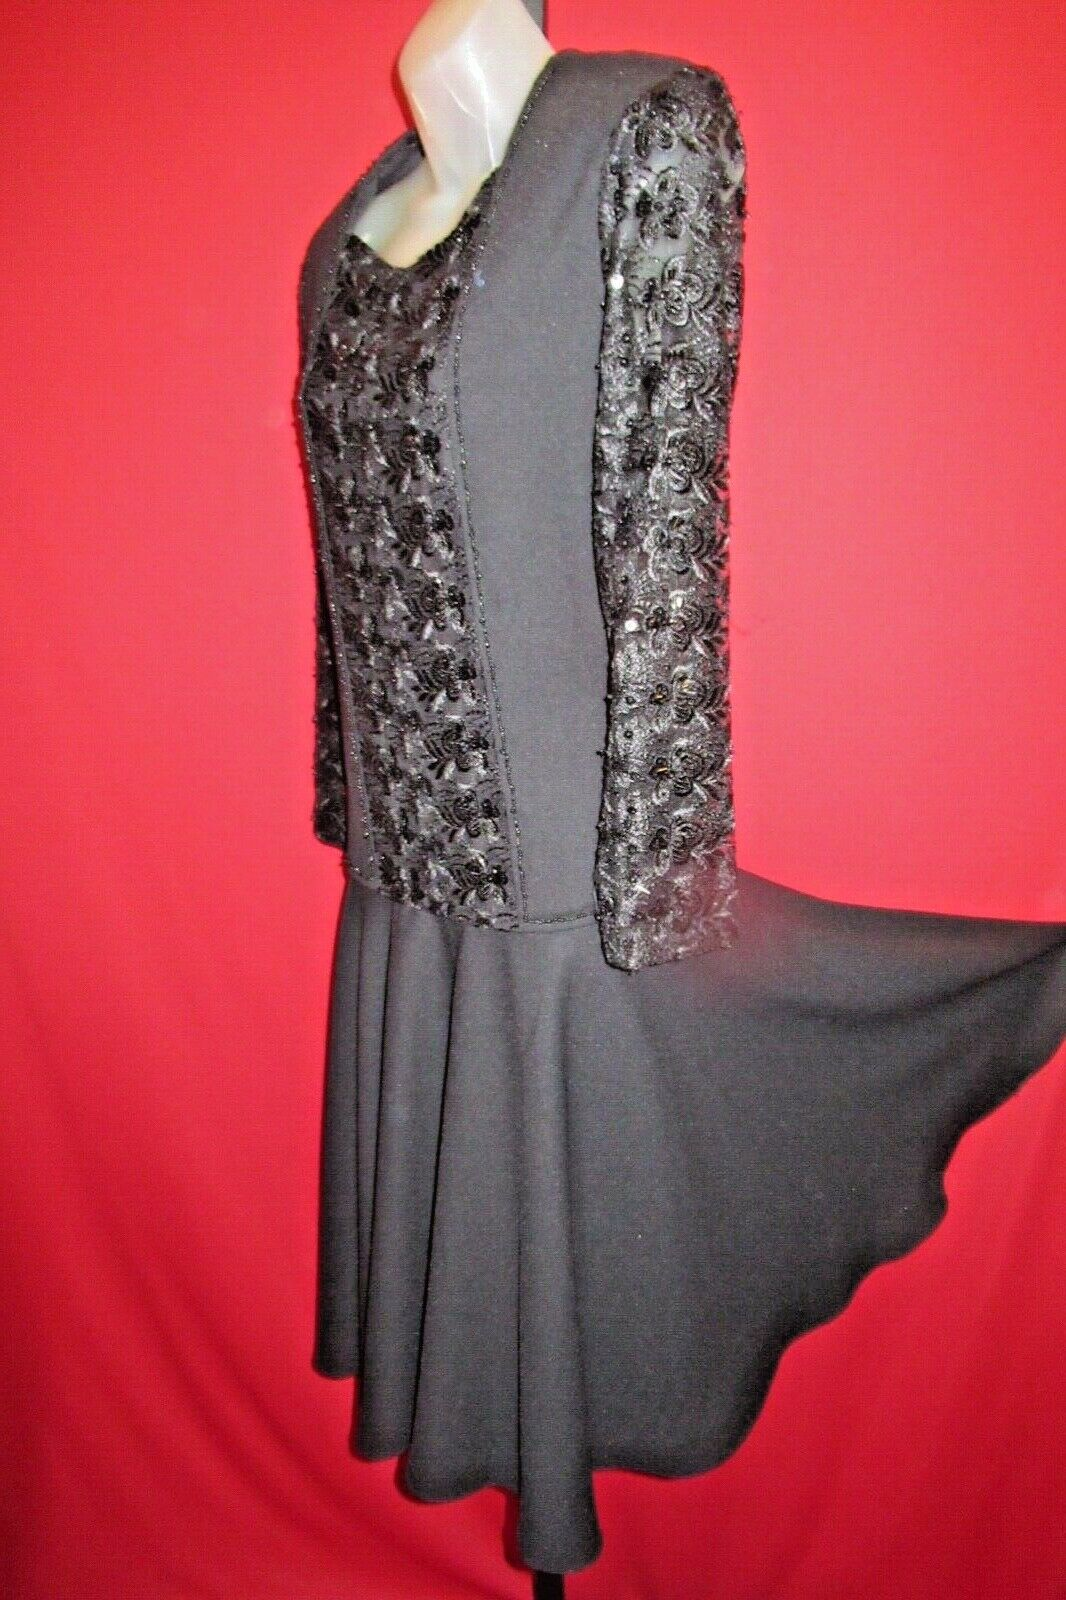 ~~Vintage 80's Black embroidered Beaded Lace Mourning Dress Size Small~~